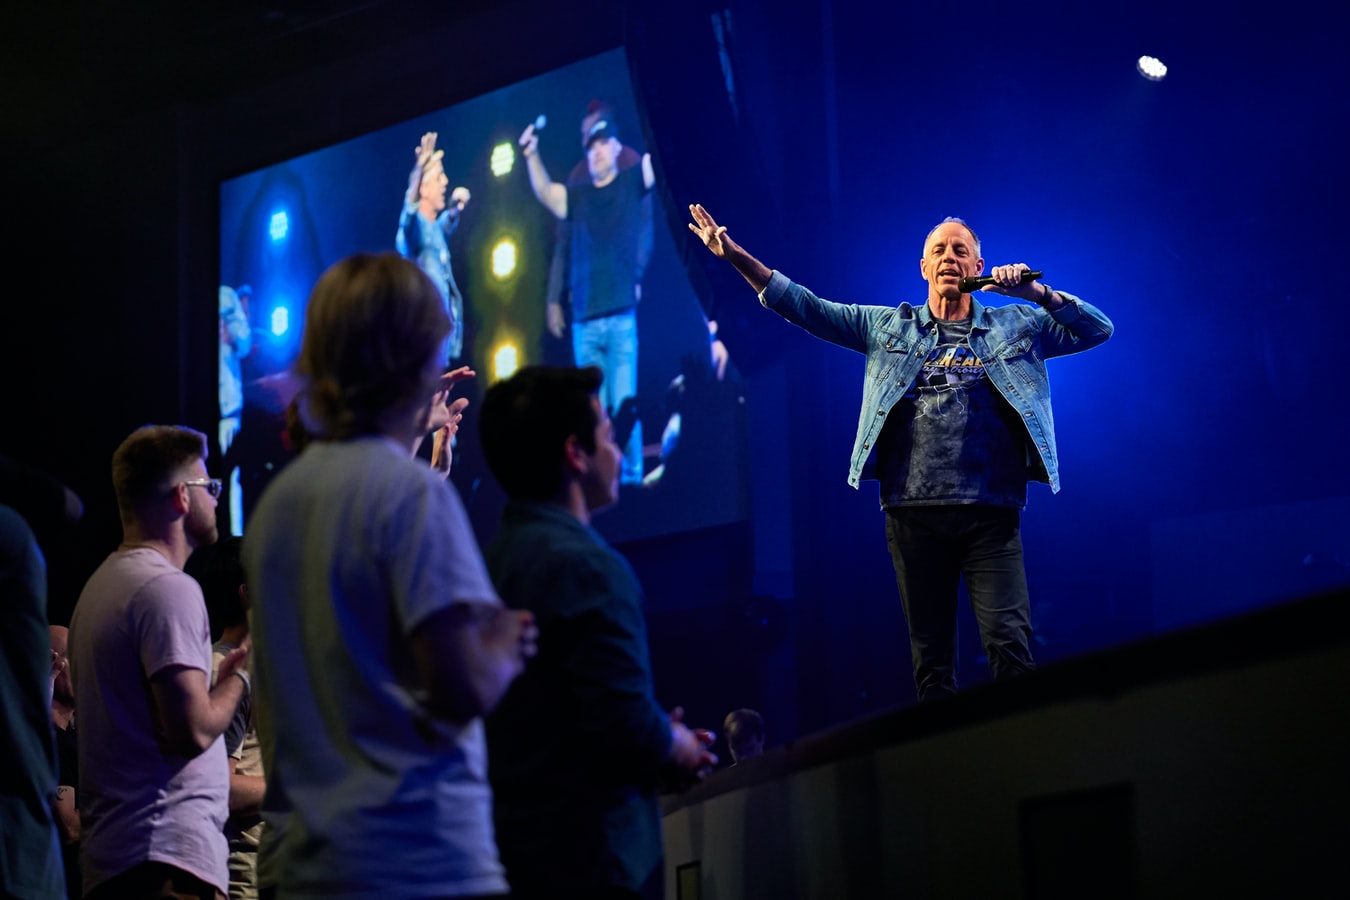 man on a stage singing with a video screen behind him and a crowd looking on